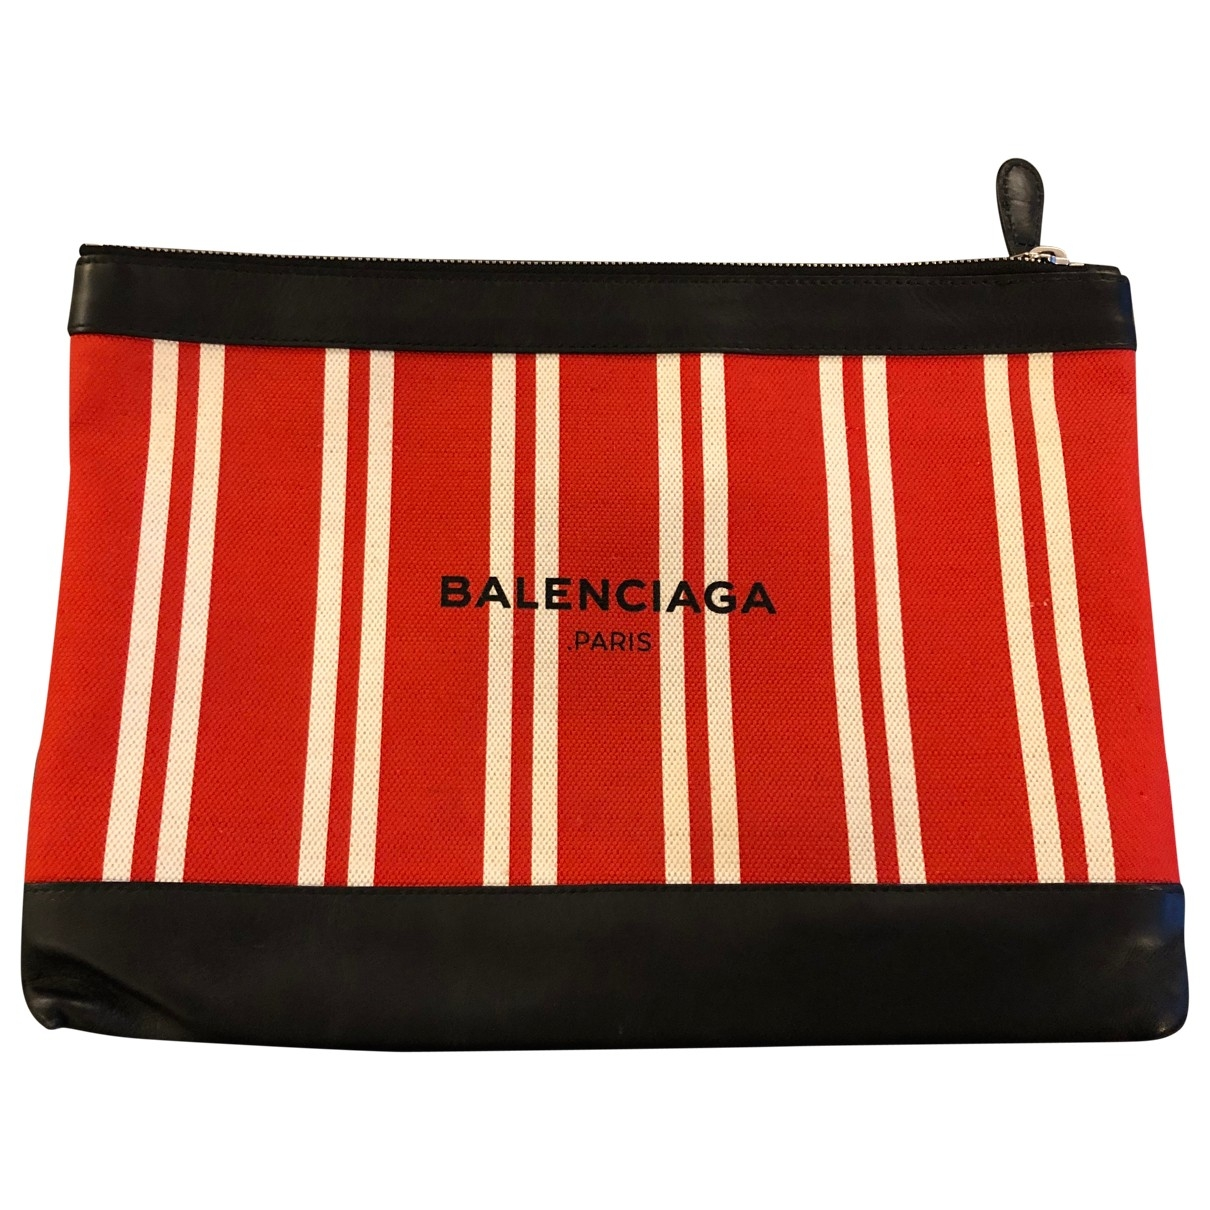 Balenciaga \N Red Cloth Clutch bag for Women \N